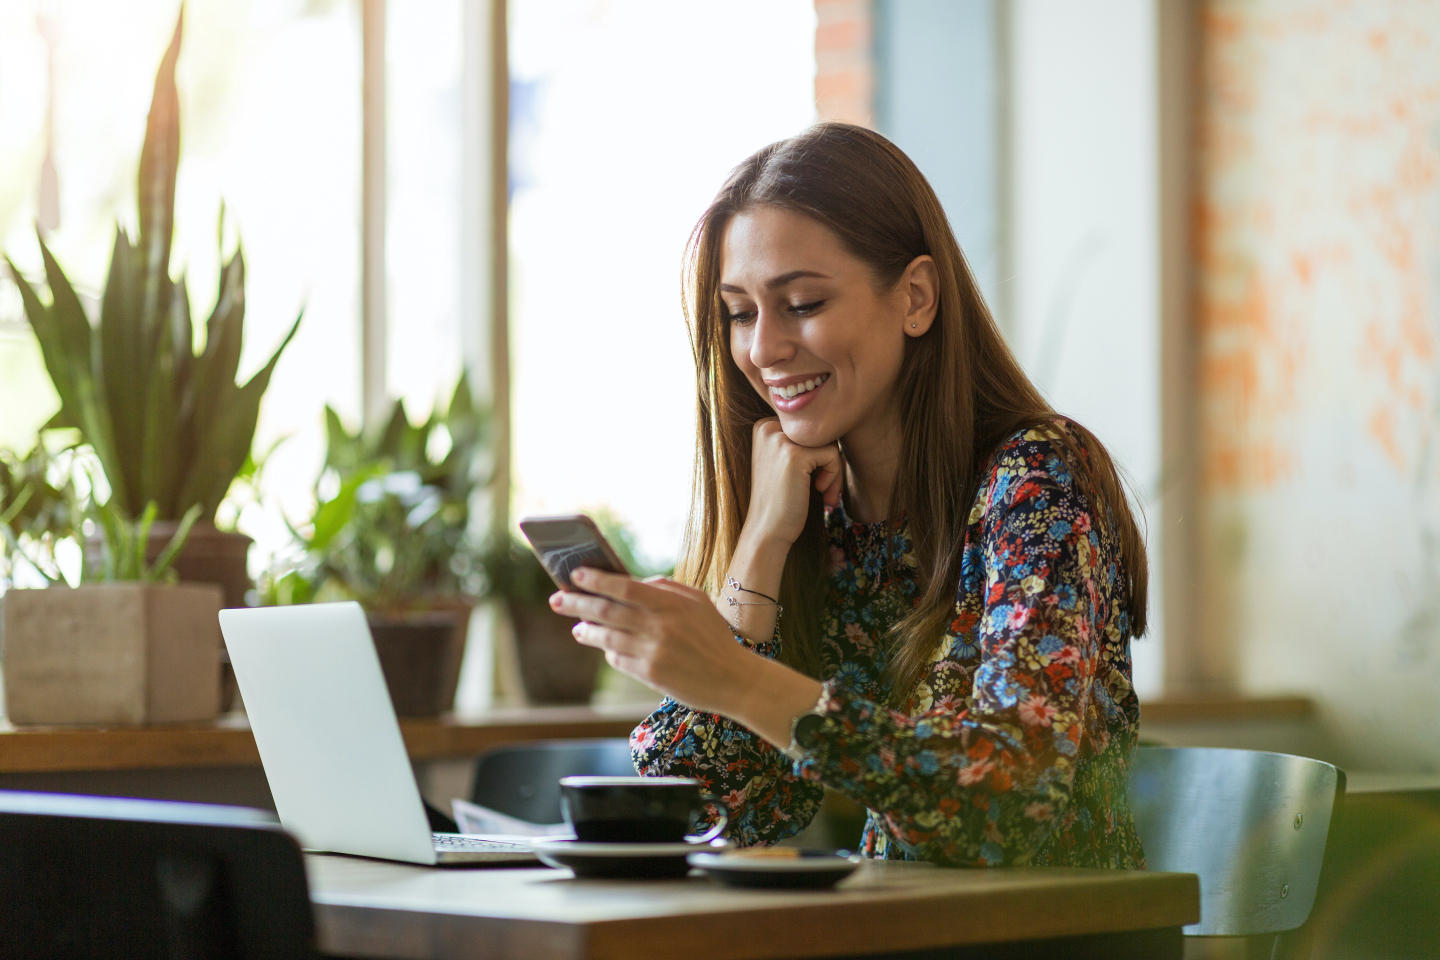 Woman checking her cell phone and smiling at a coffee shop